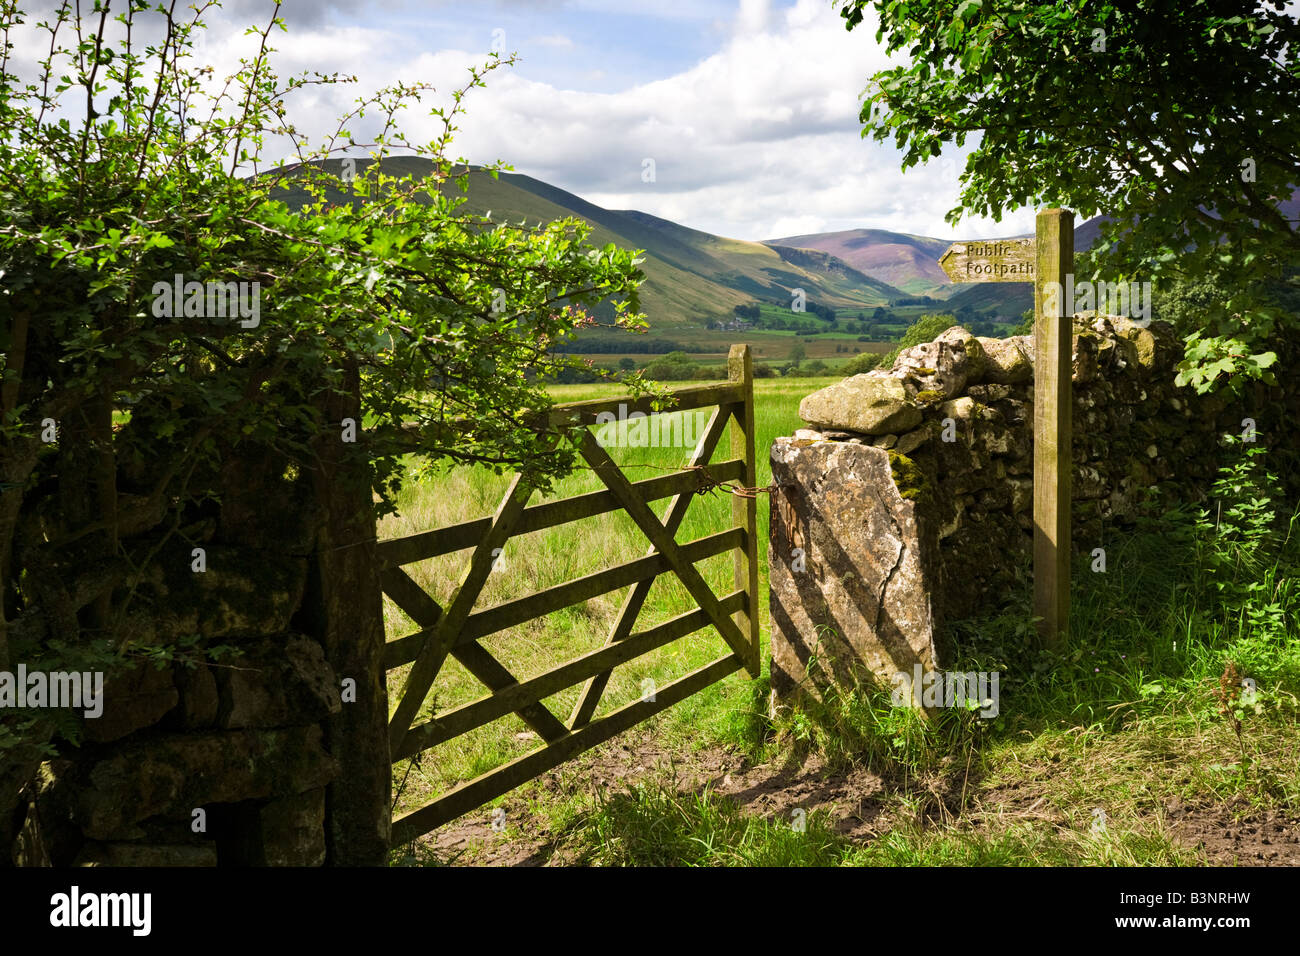 Typical English Lake District rural scene with wooden public footpath signpost sign, England, UK - Stock Image